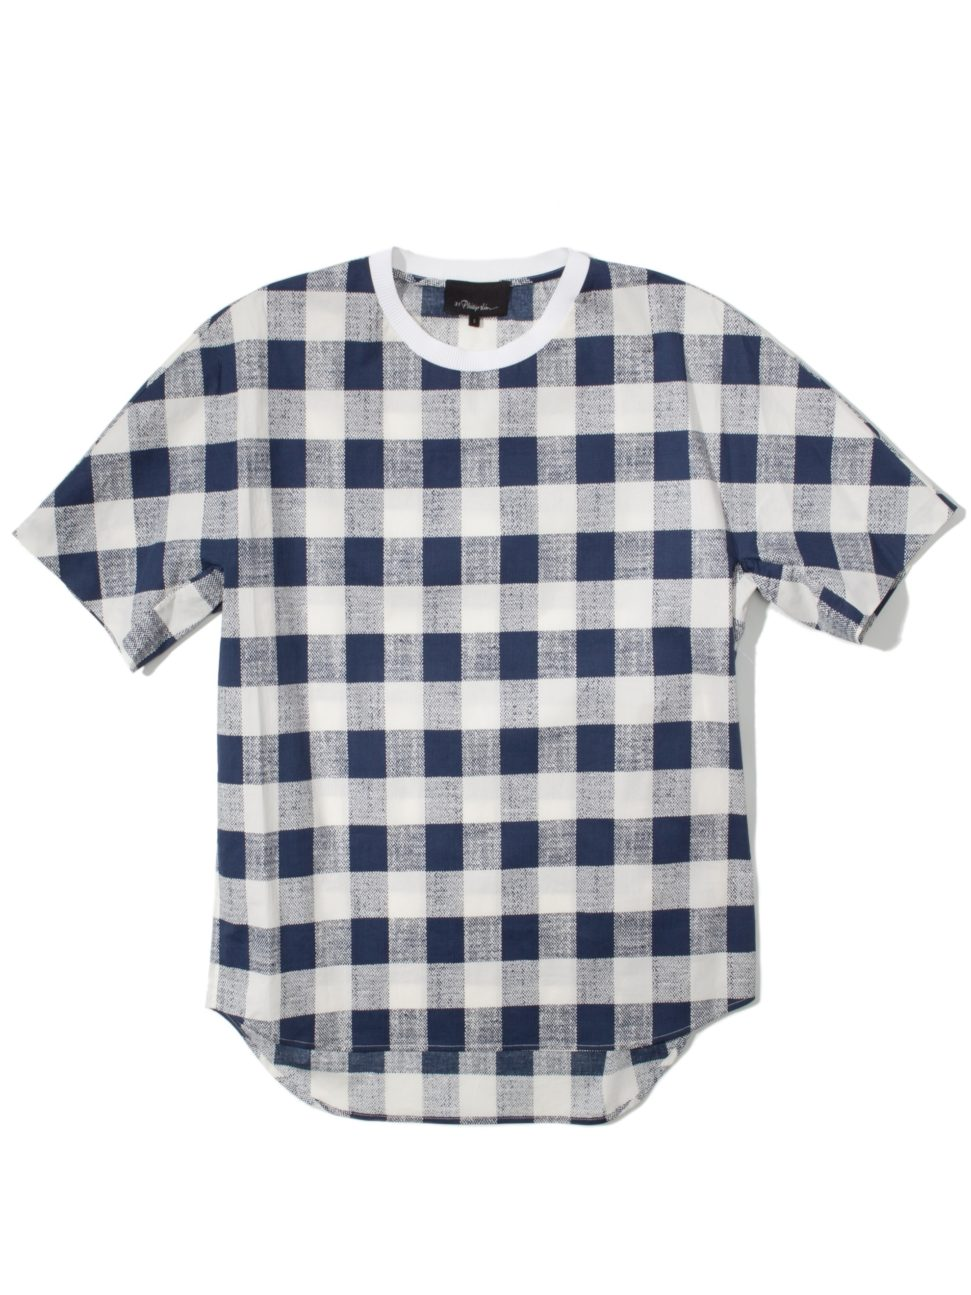 3.1 Phillip Lim Buffalo Check Dolman Sleeve T-Shirt